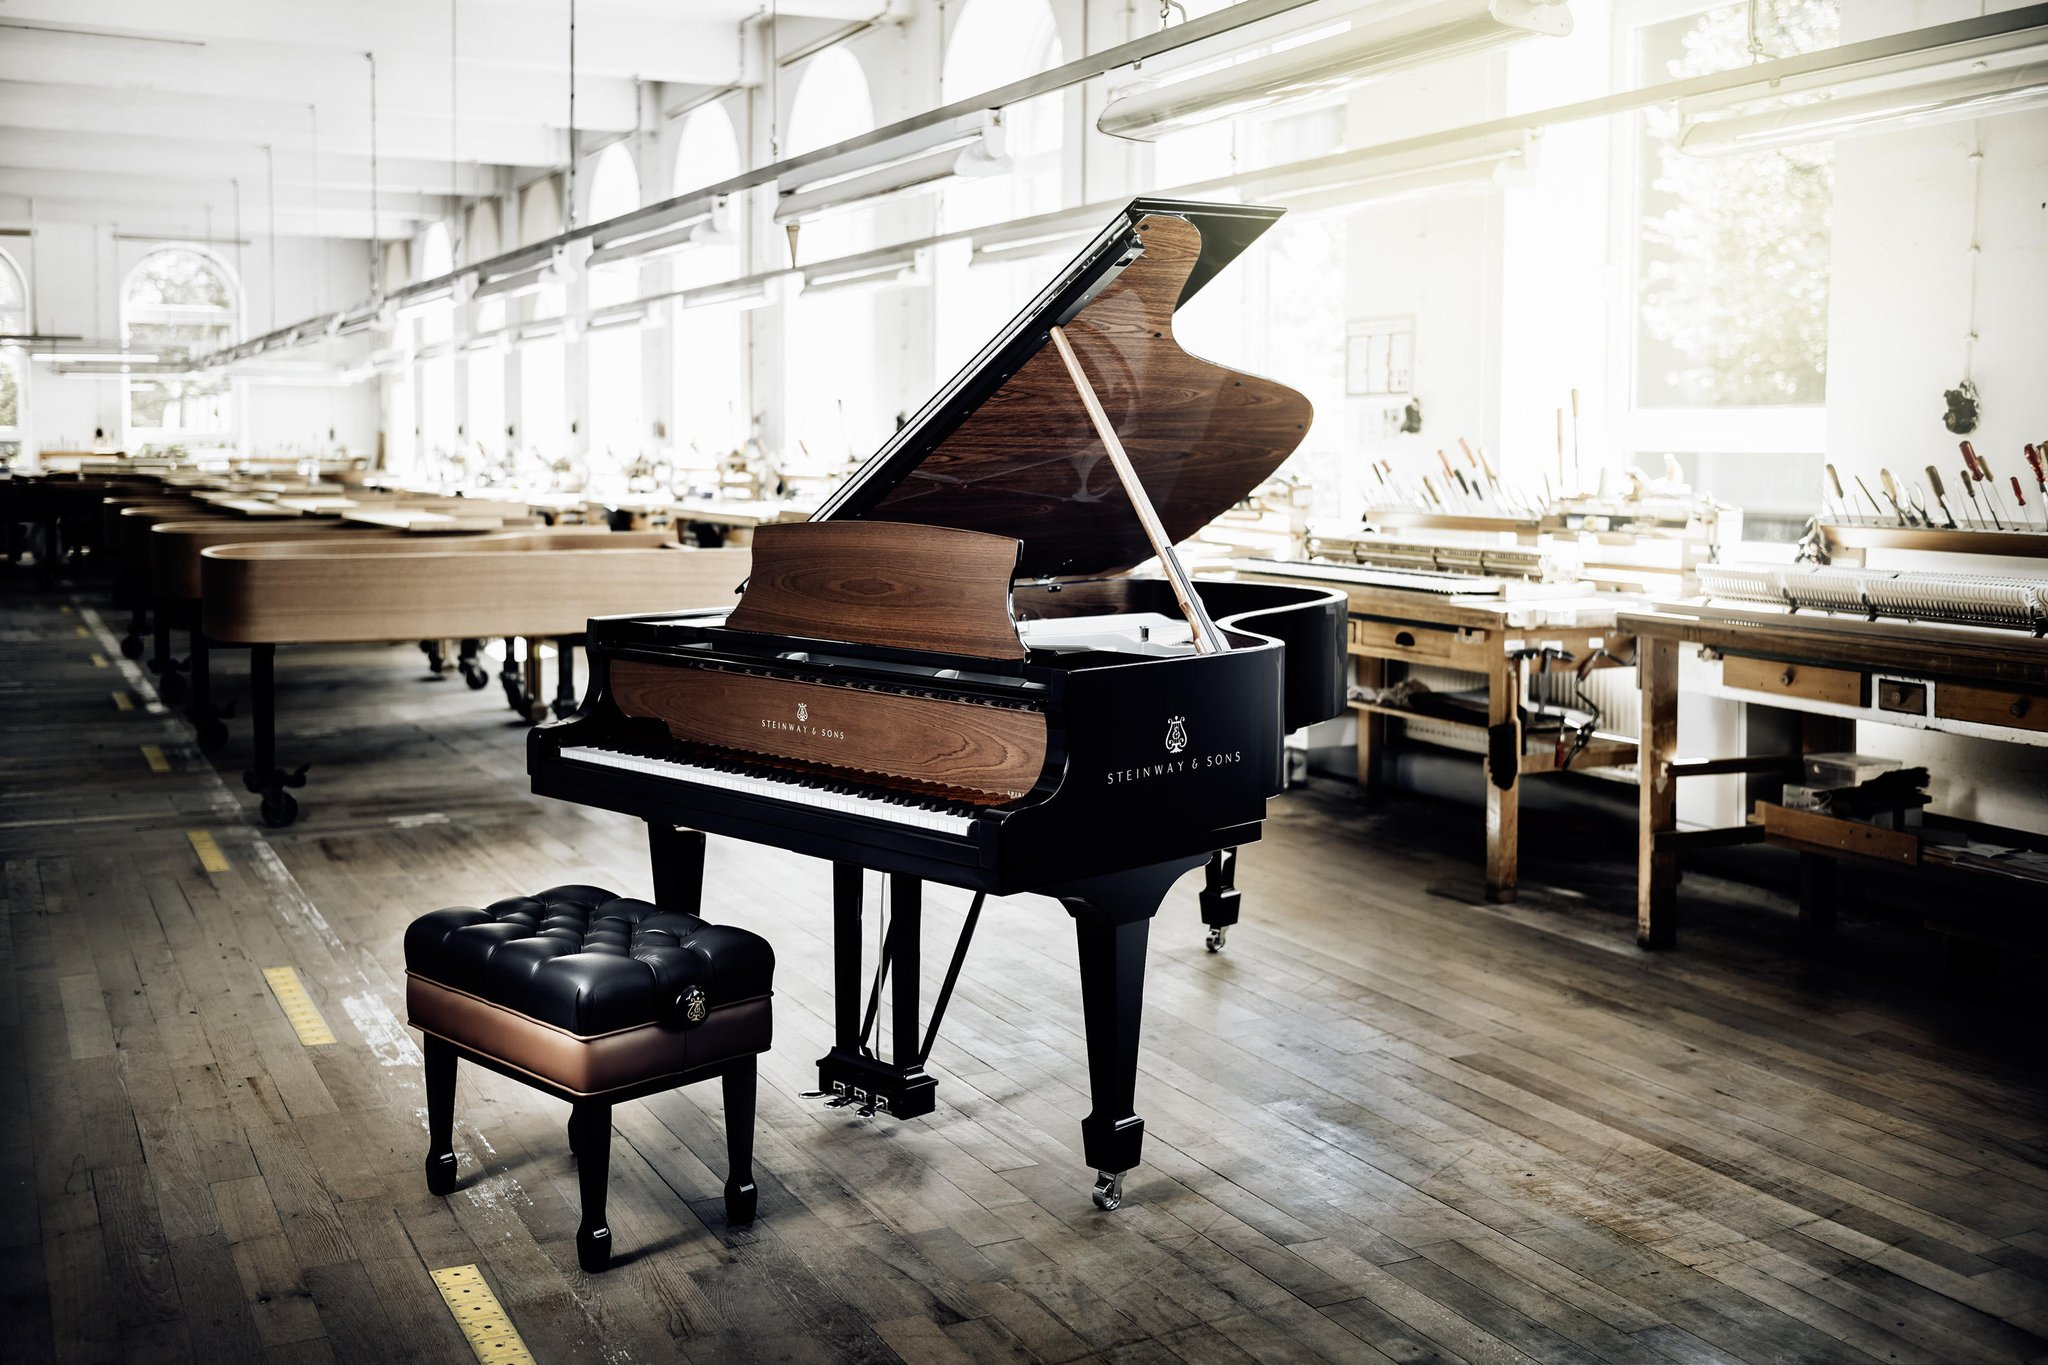 Reloaded twaddle – RT @SteinwayAndSons: When precision, experience and innovation go hand in hand: ...